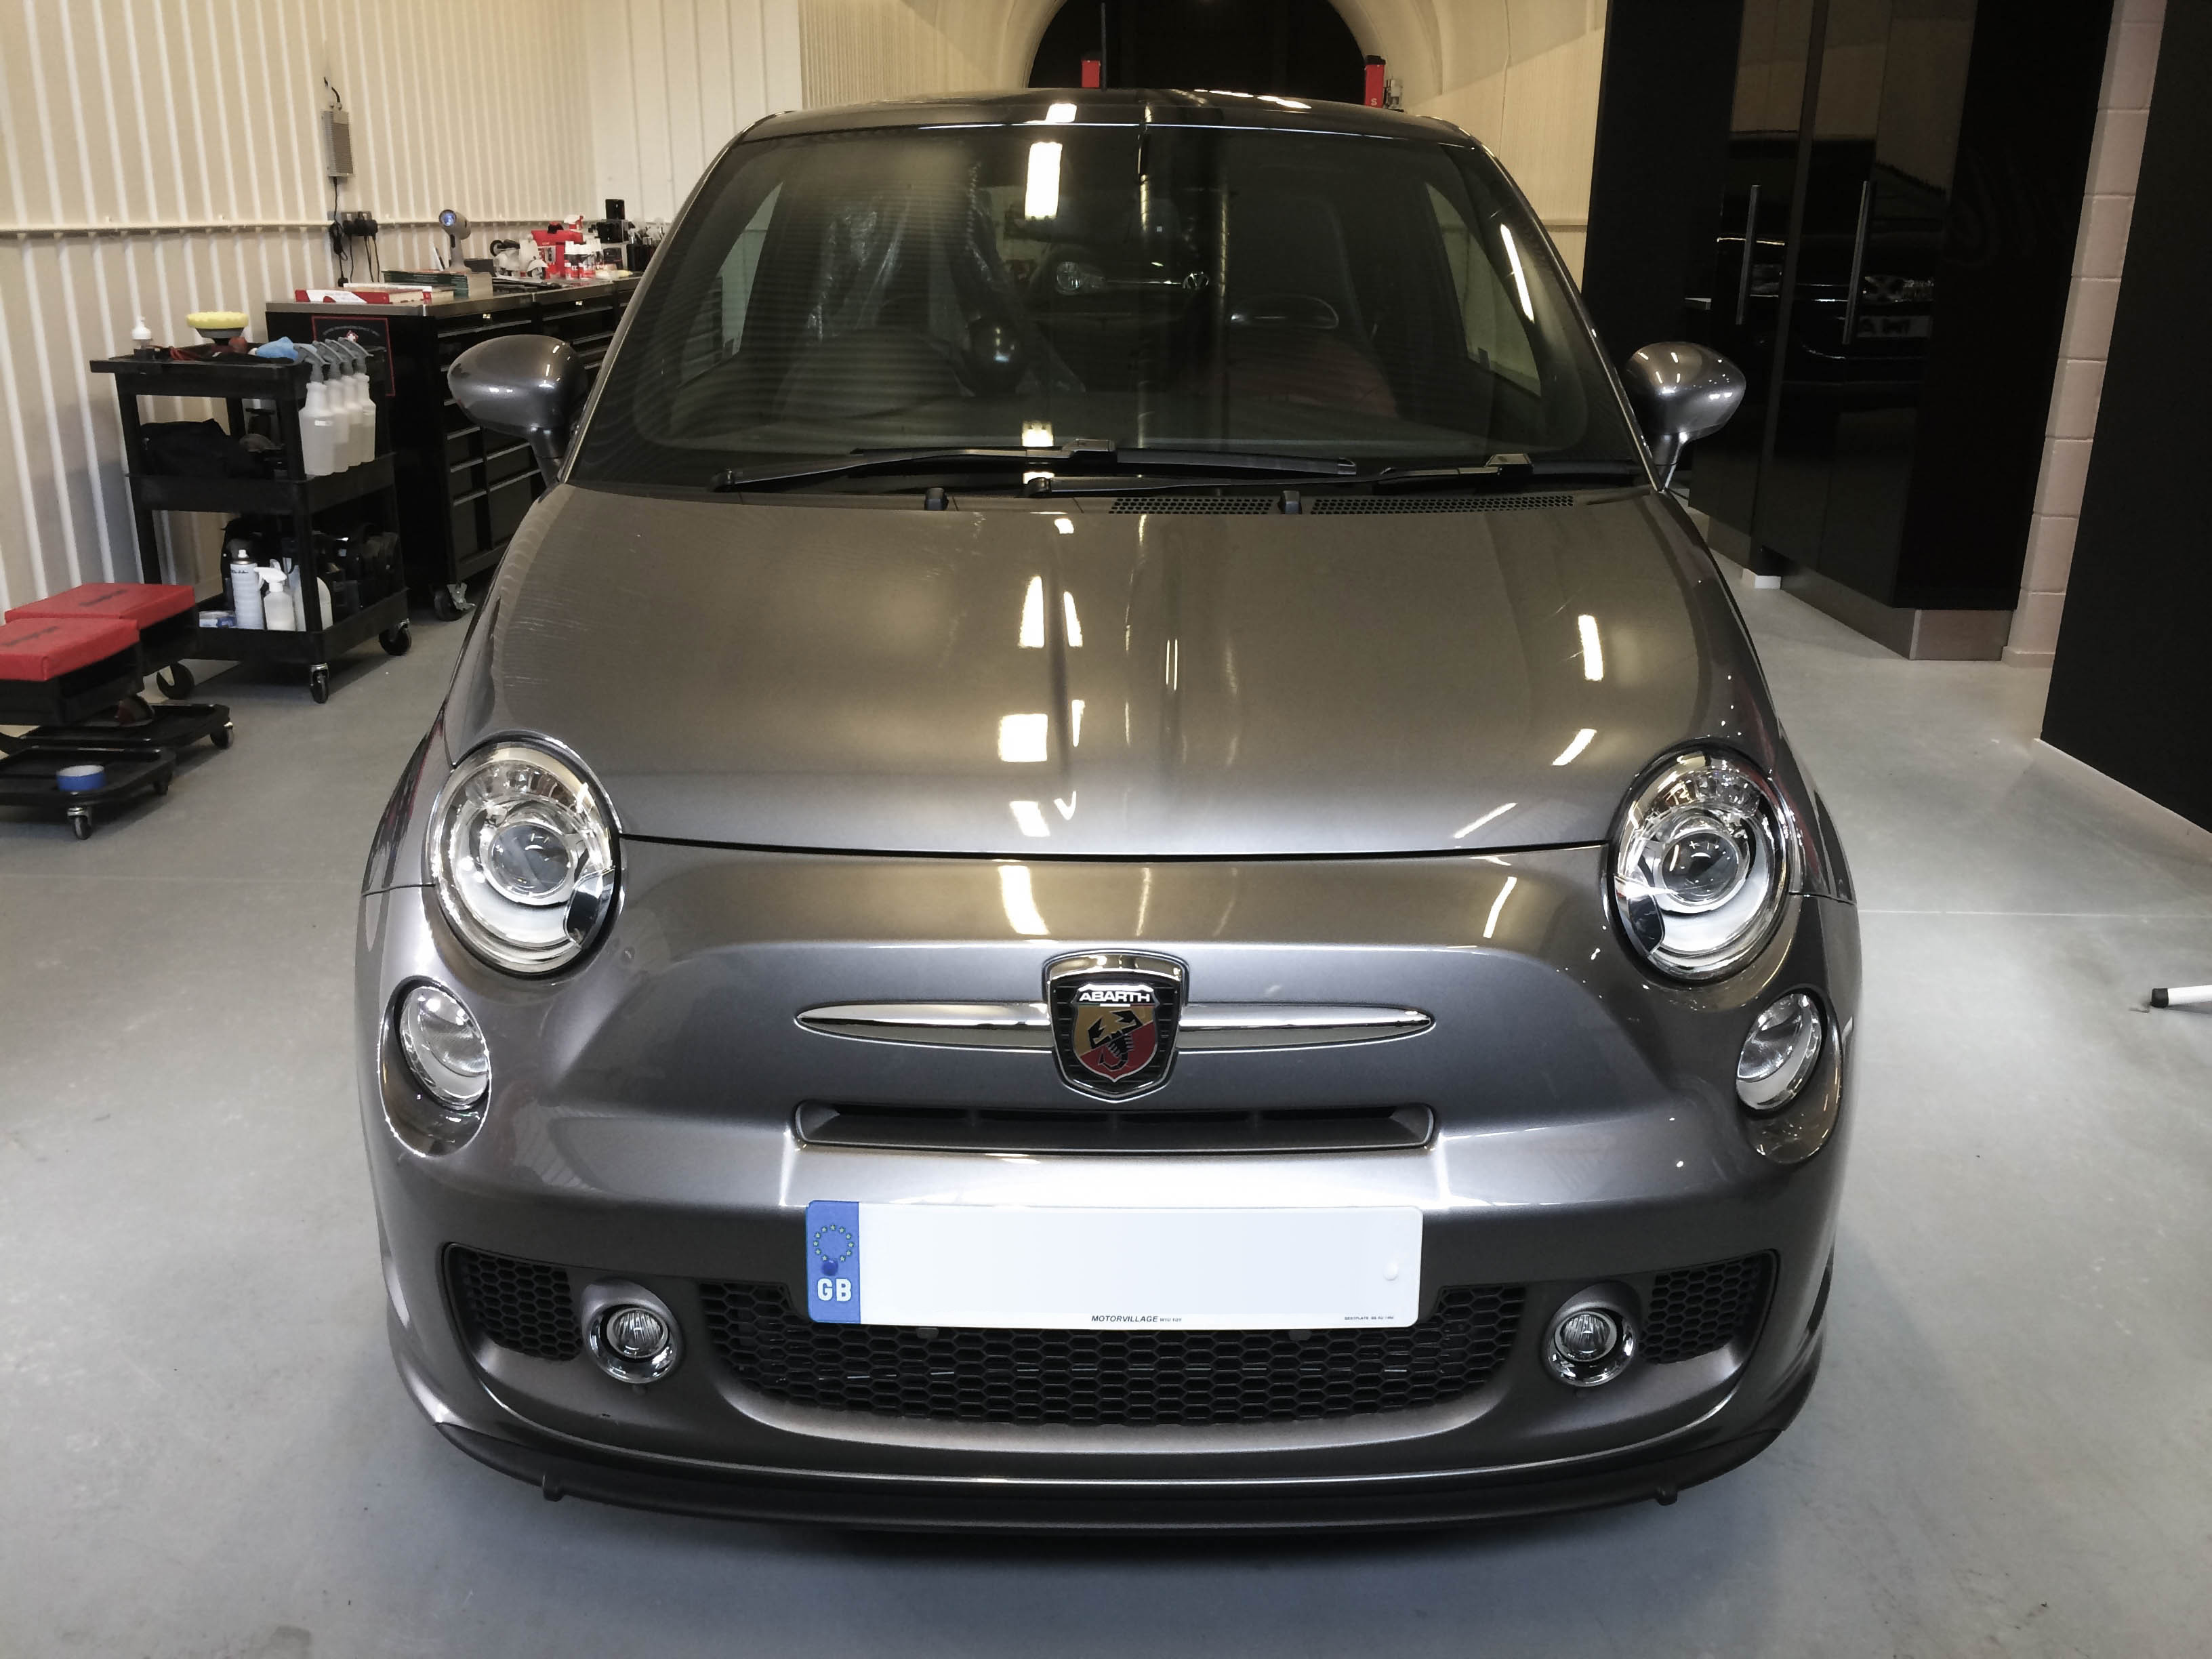 Fiat Abarth – Head on